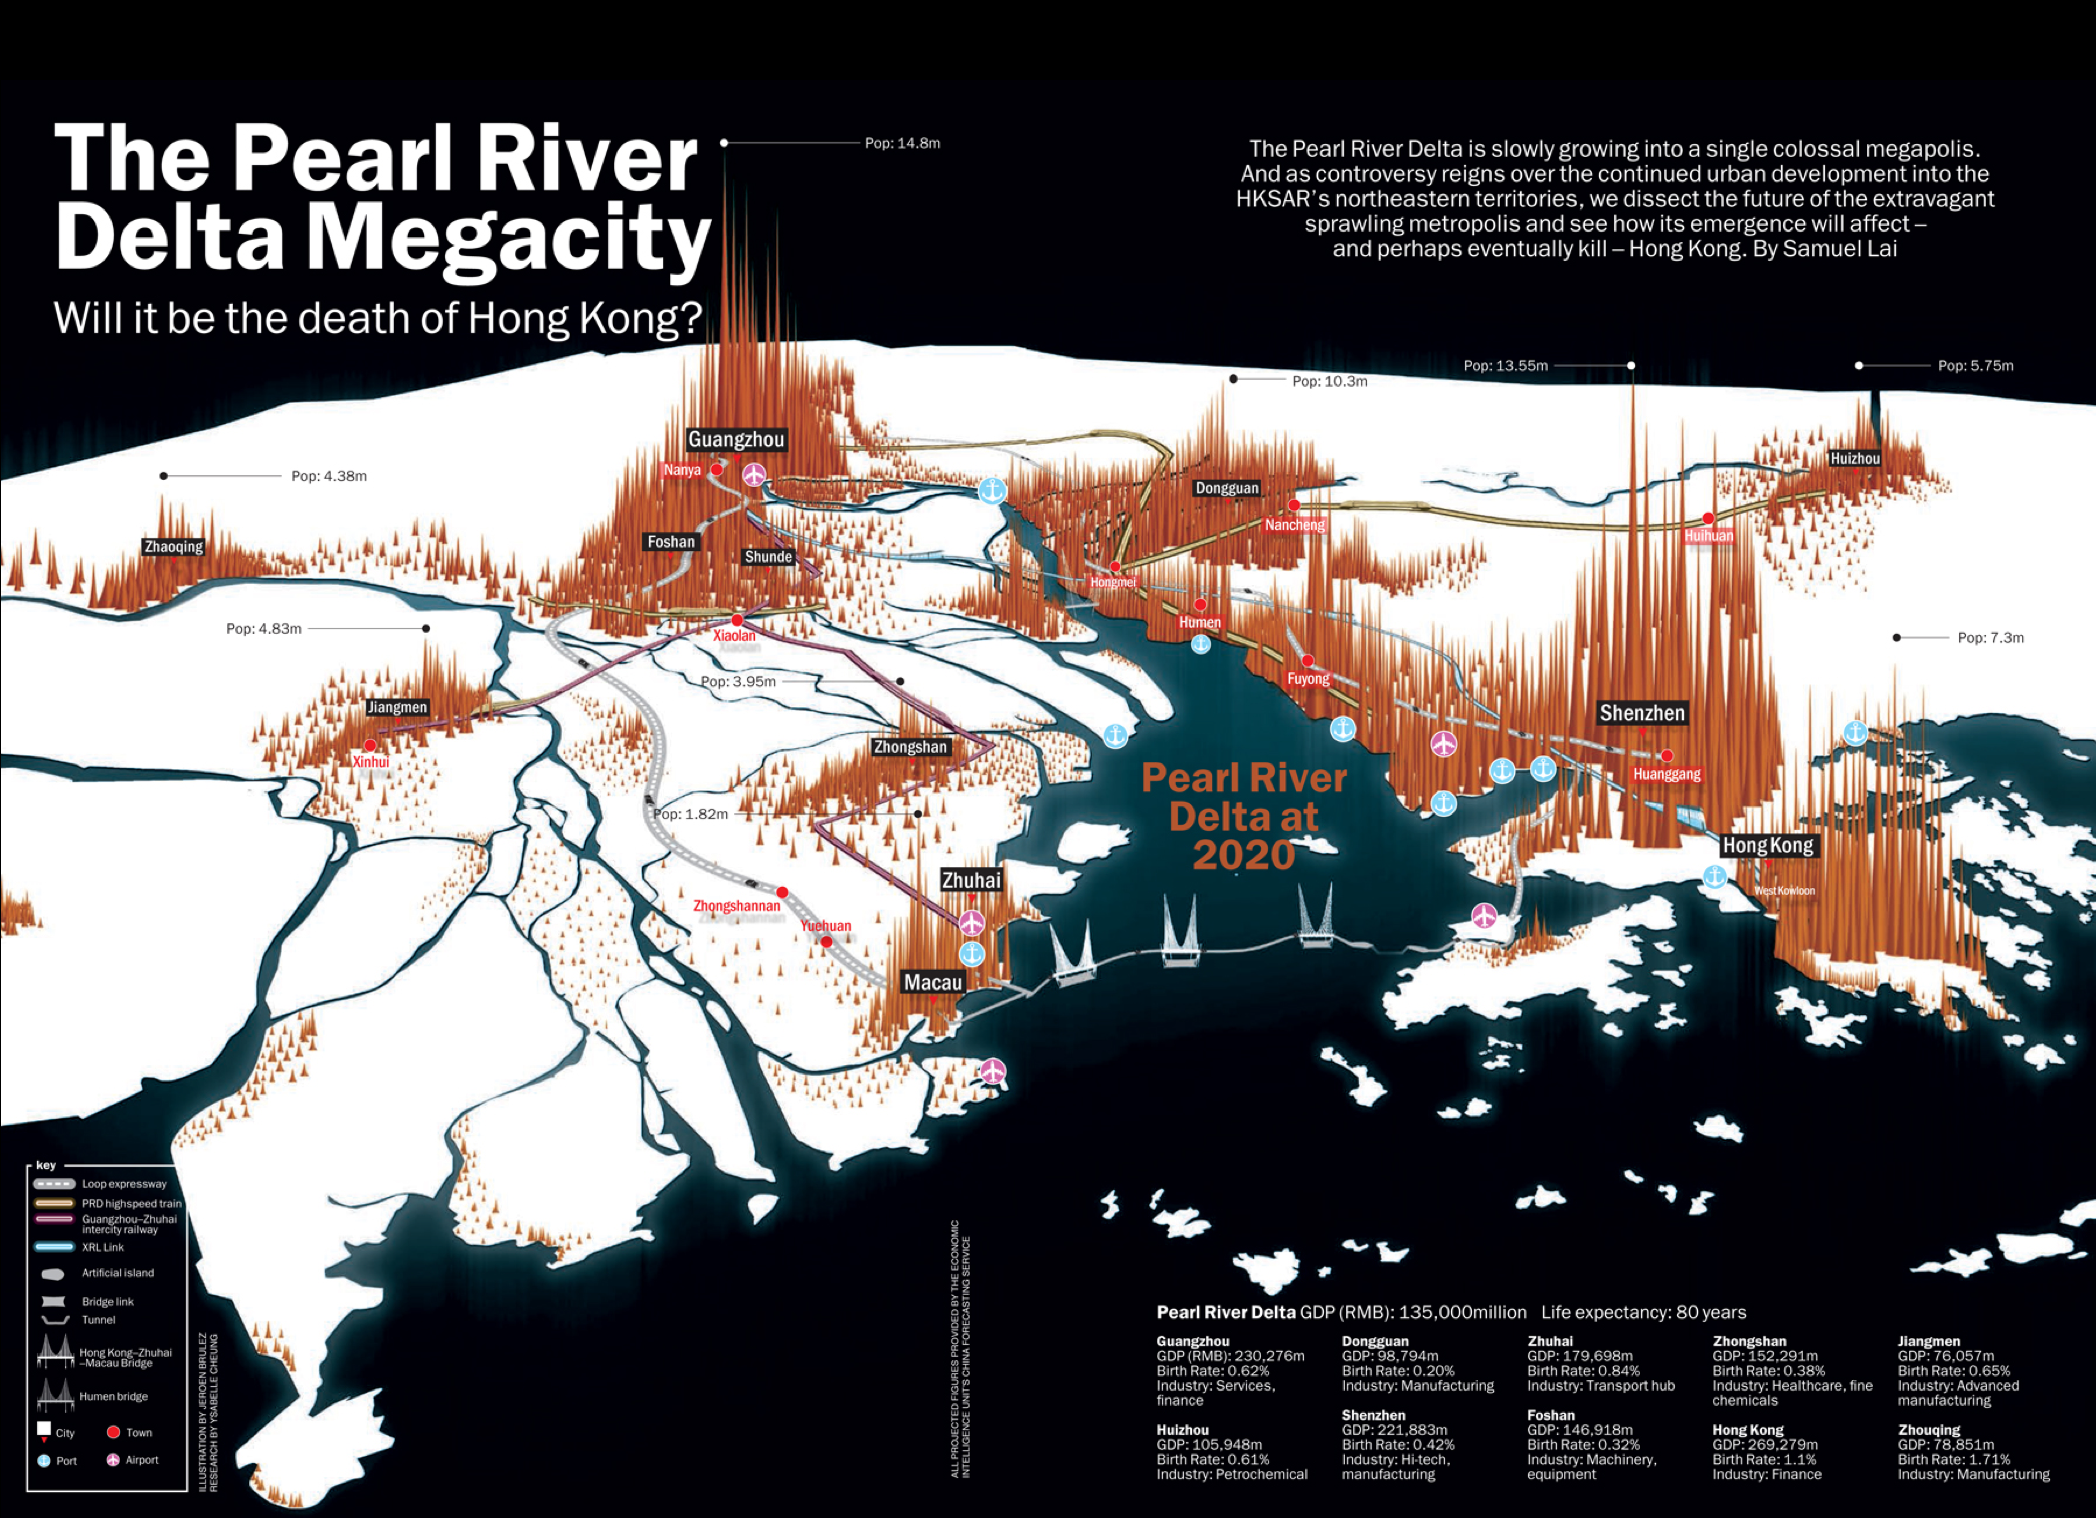 A map showing the Pearl Delta Megacity in China – The biggest human concentration in the world and home of Asia's Silicon Valley